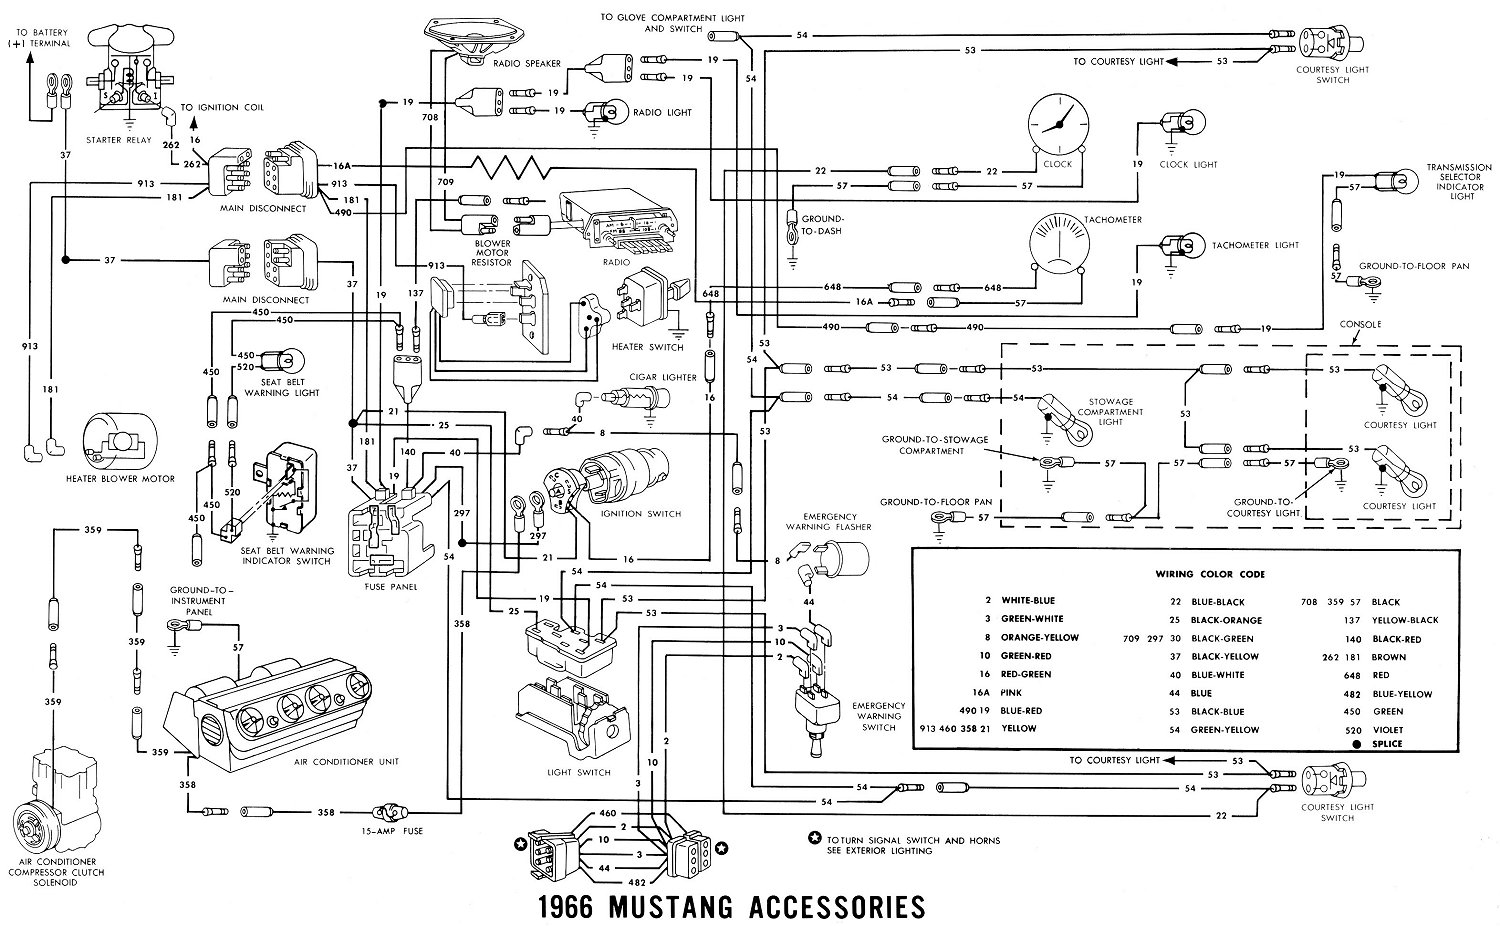 1970 mustang wiring diagram wirdig mustang mach 1 wiring diagram 2000 ford mustang ignition wiring